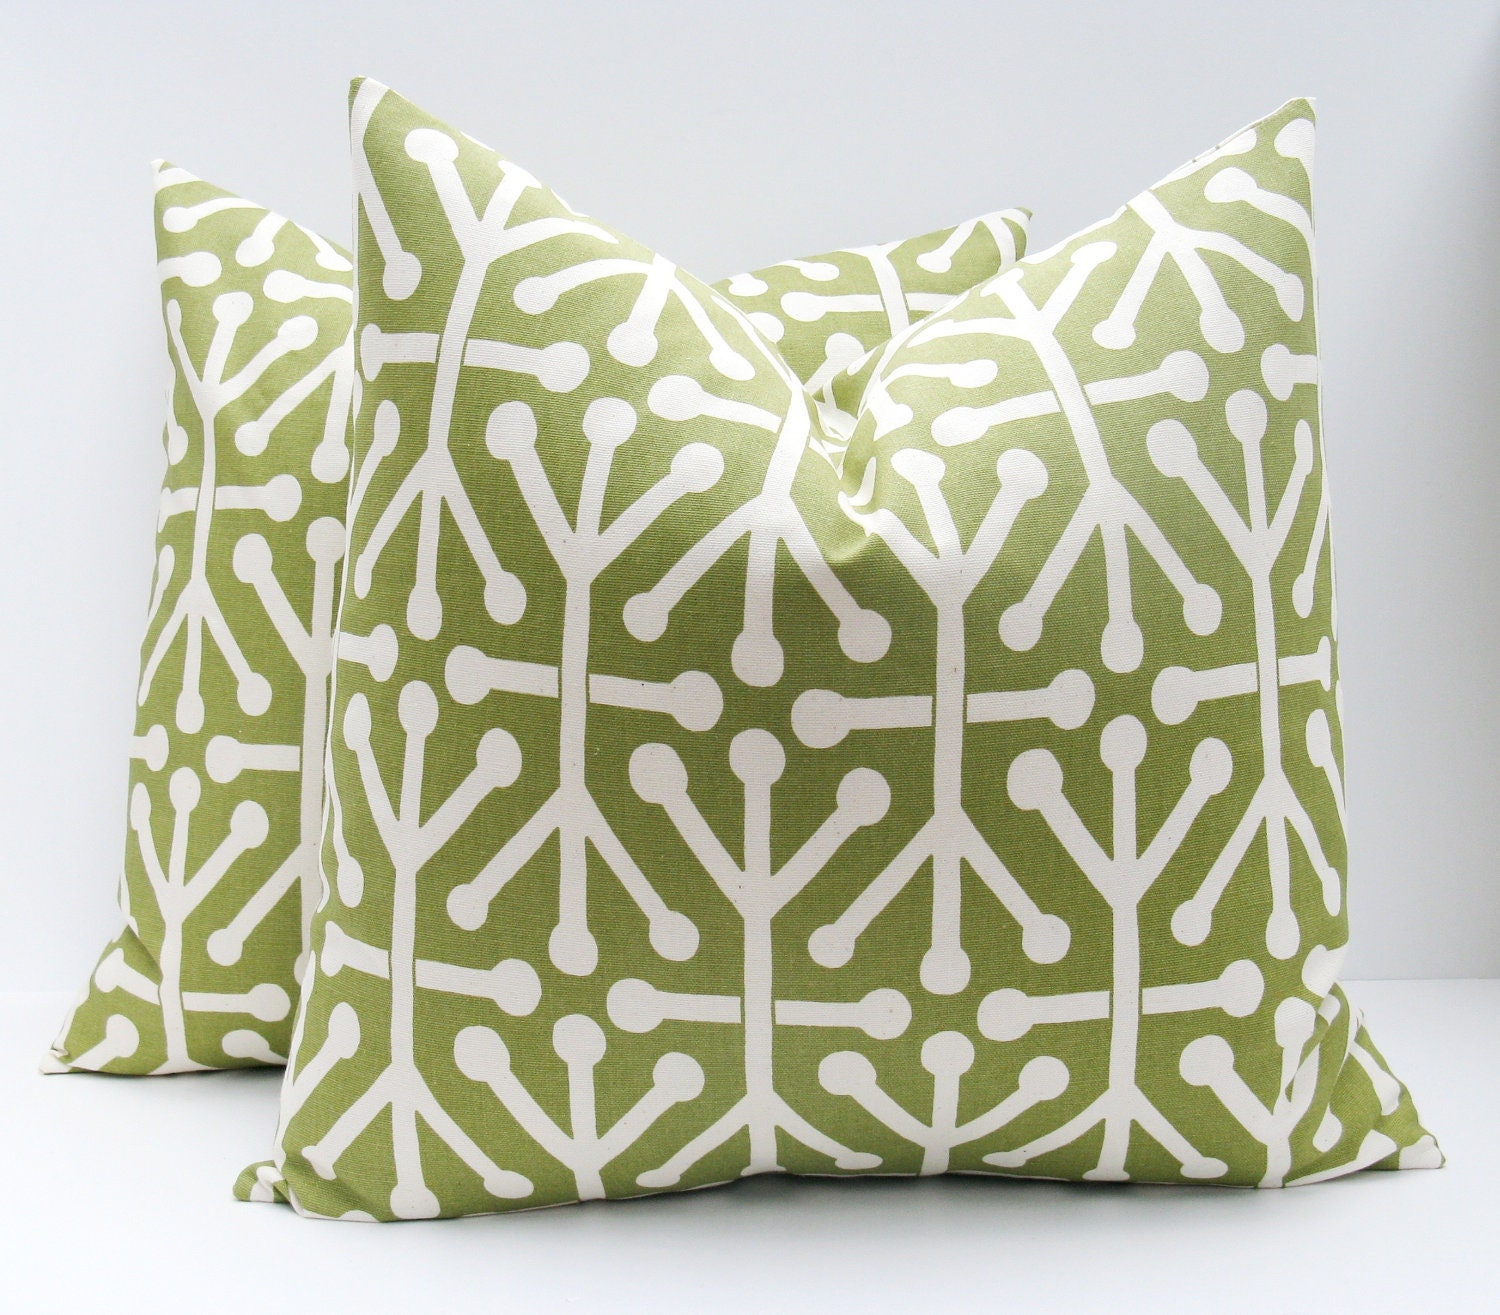 Olive Green Decorative Pillow : Decorative Throw Pillows Green Pillow Cover Olive by EastAndNest